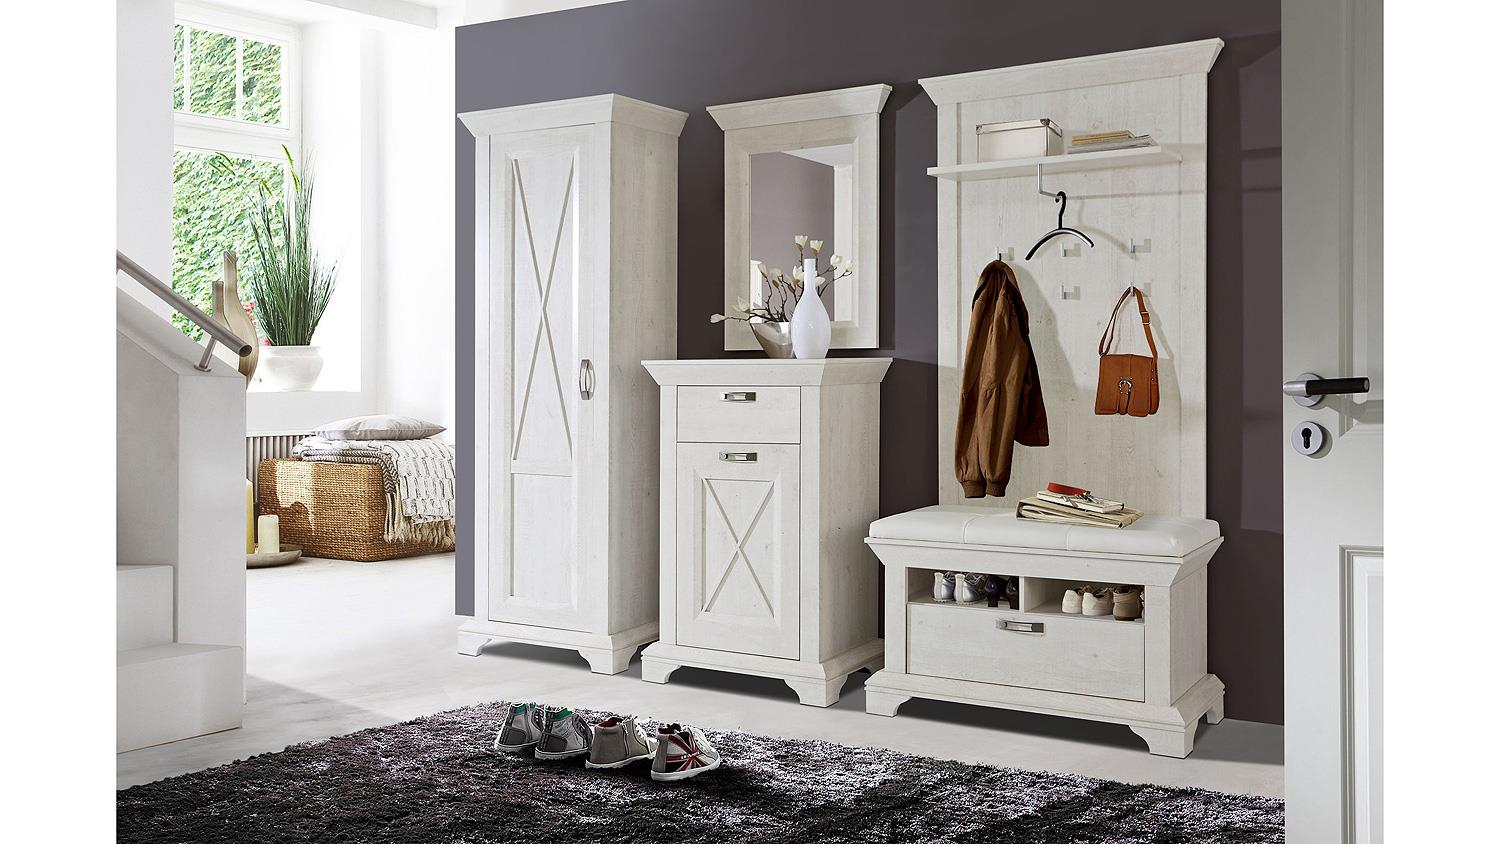 garderobenset kashmir garderobe in pinie wei. Black Bedroom Furniture Sets. Home Design Ideas